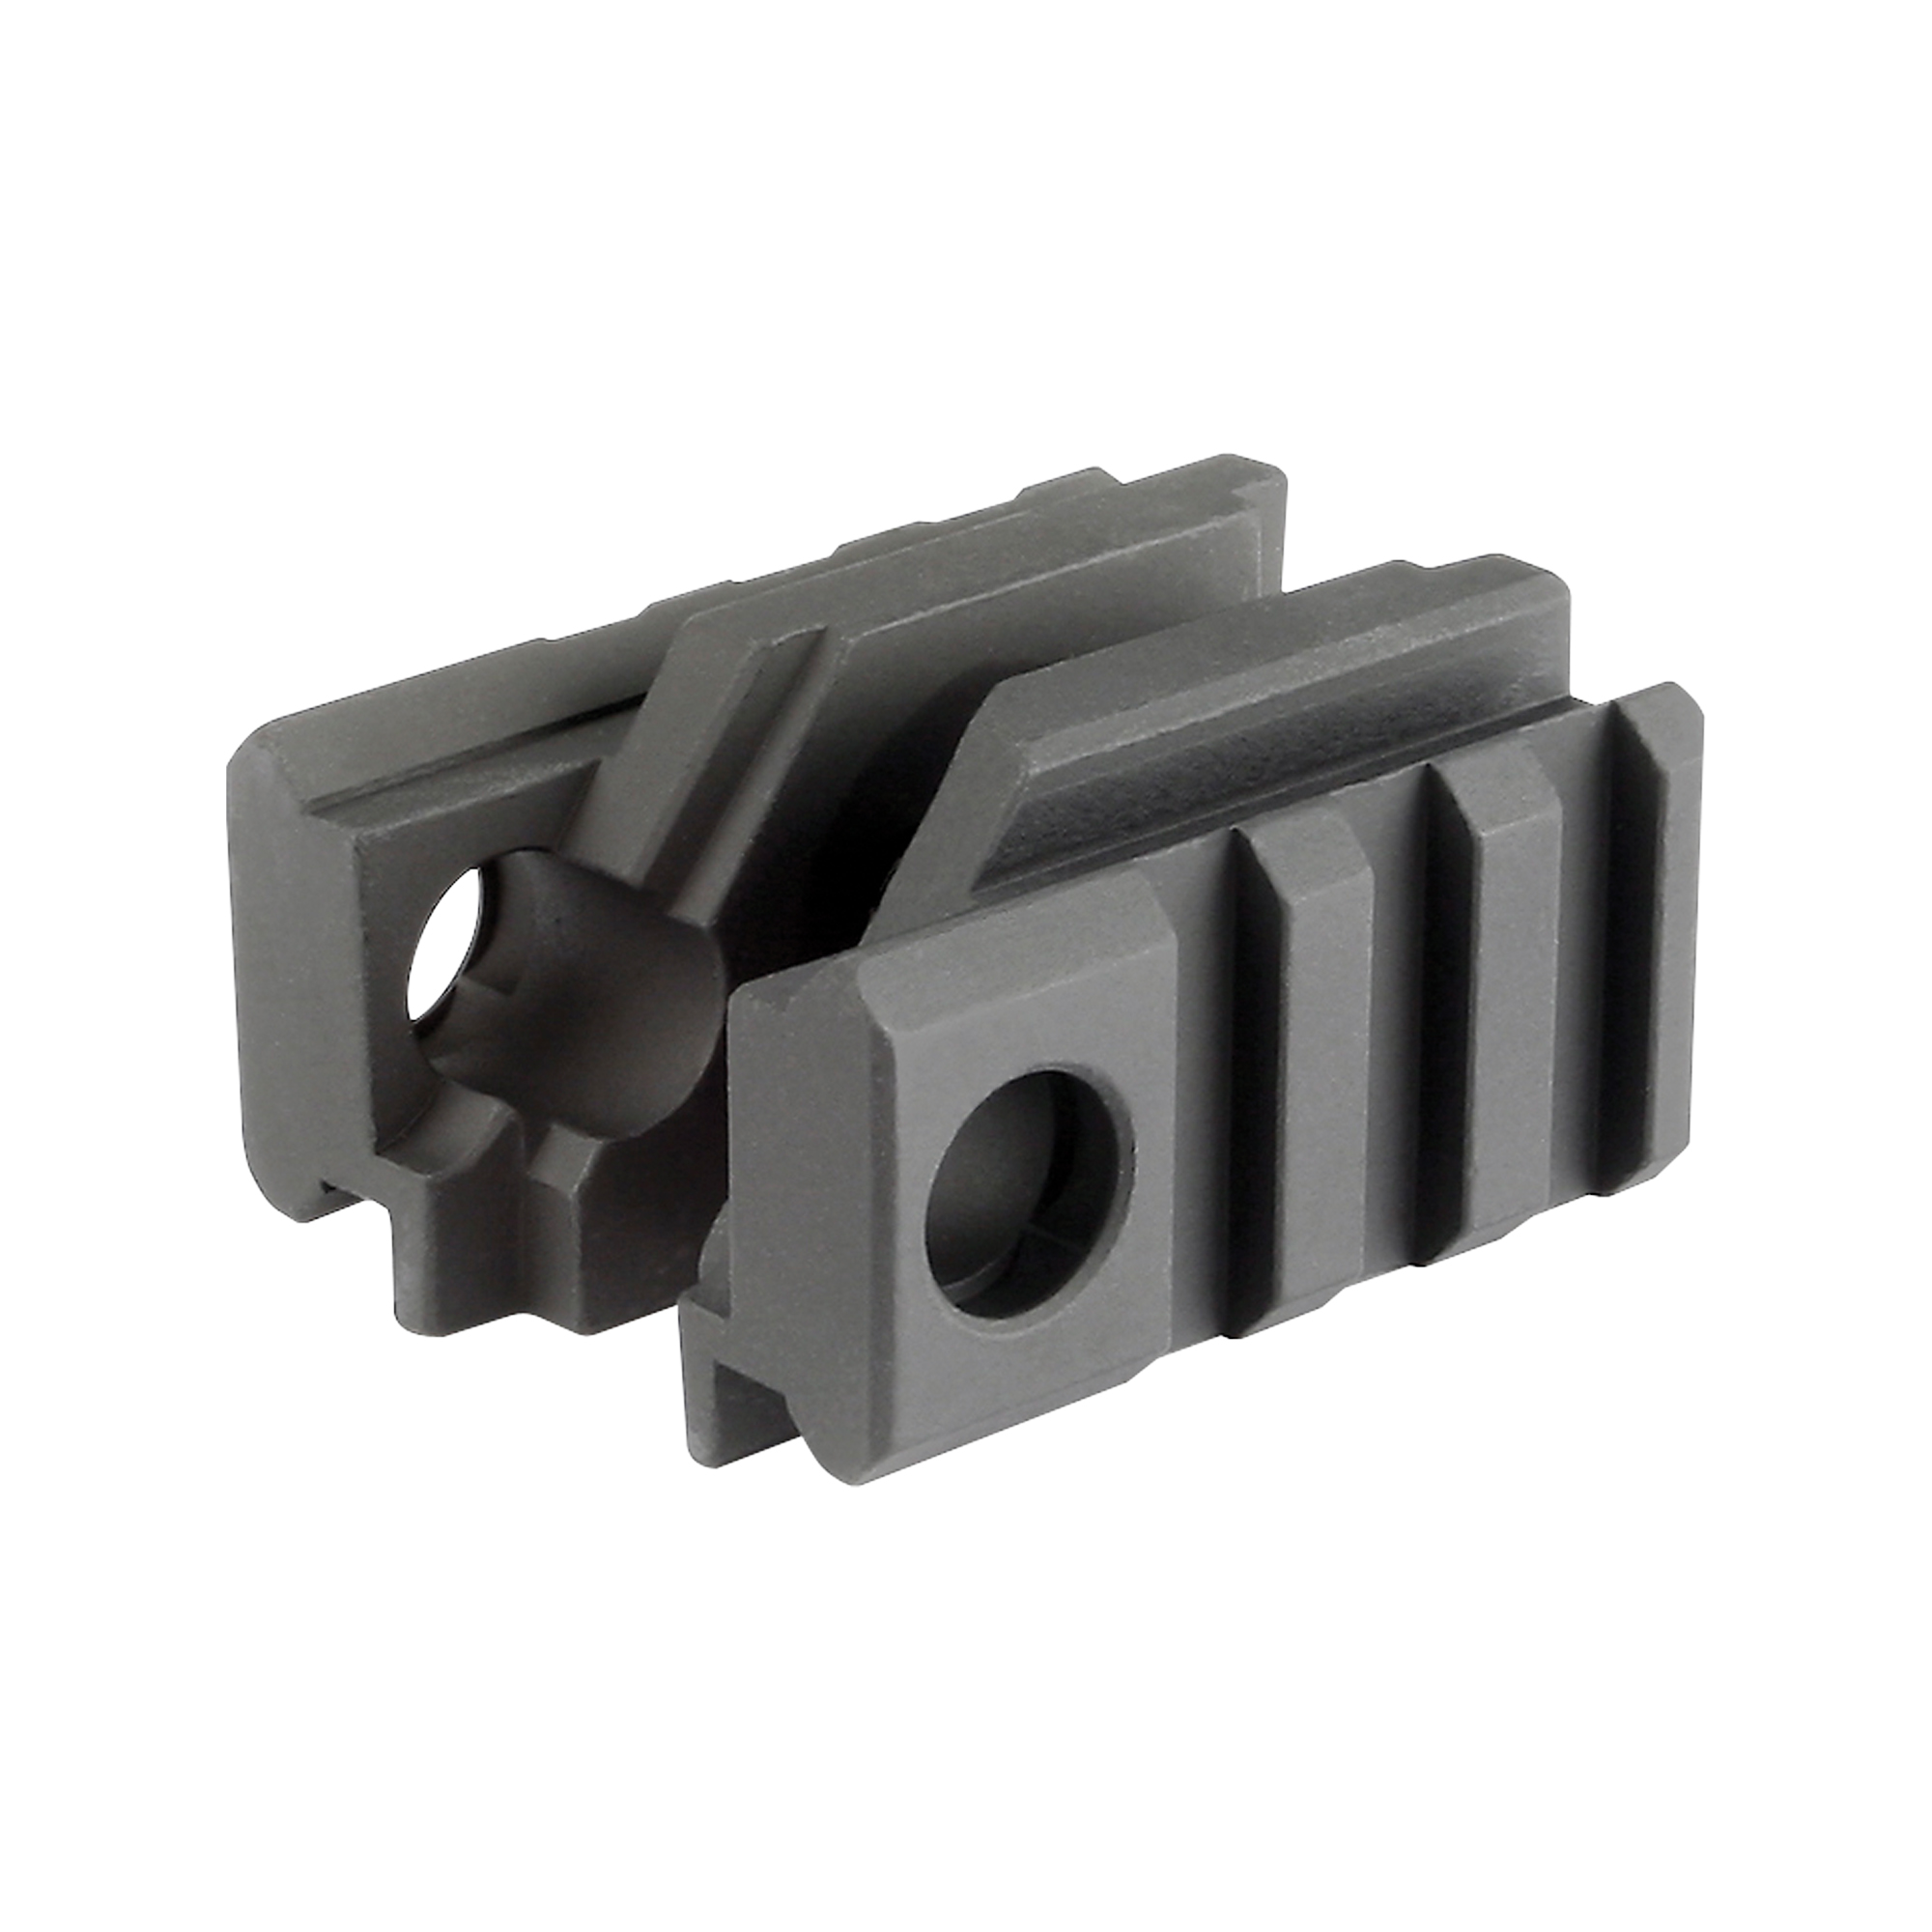 "Midwest Industries MI Tactical Light Mount is built for any circumstances and made to help the shooter adapt to any situation. It is extremely rigid and will not move once it is tightened due to the taper and angled cuts. With its two mil-spec picatinny rails with two anti-rotation sling swivel sockets"" it will fit any AR series rifle with standard front sight housing."